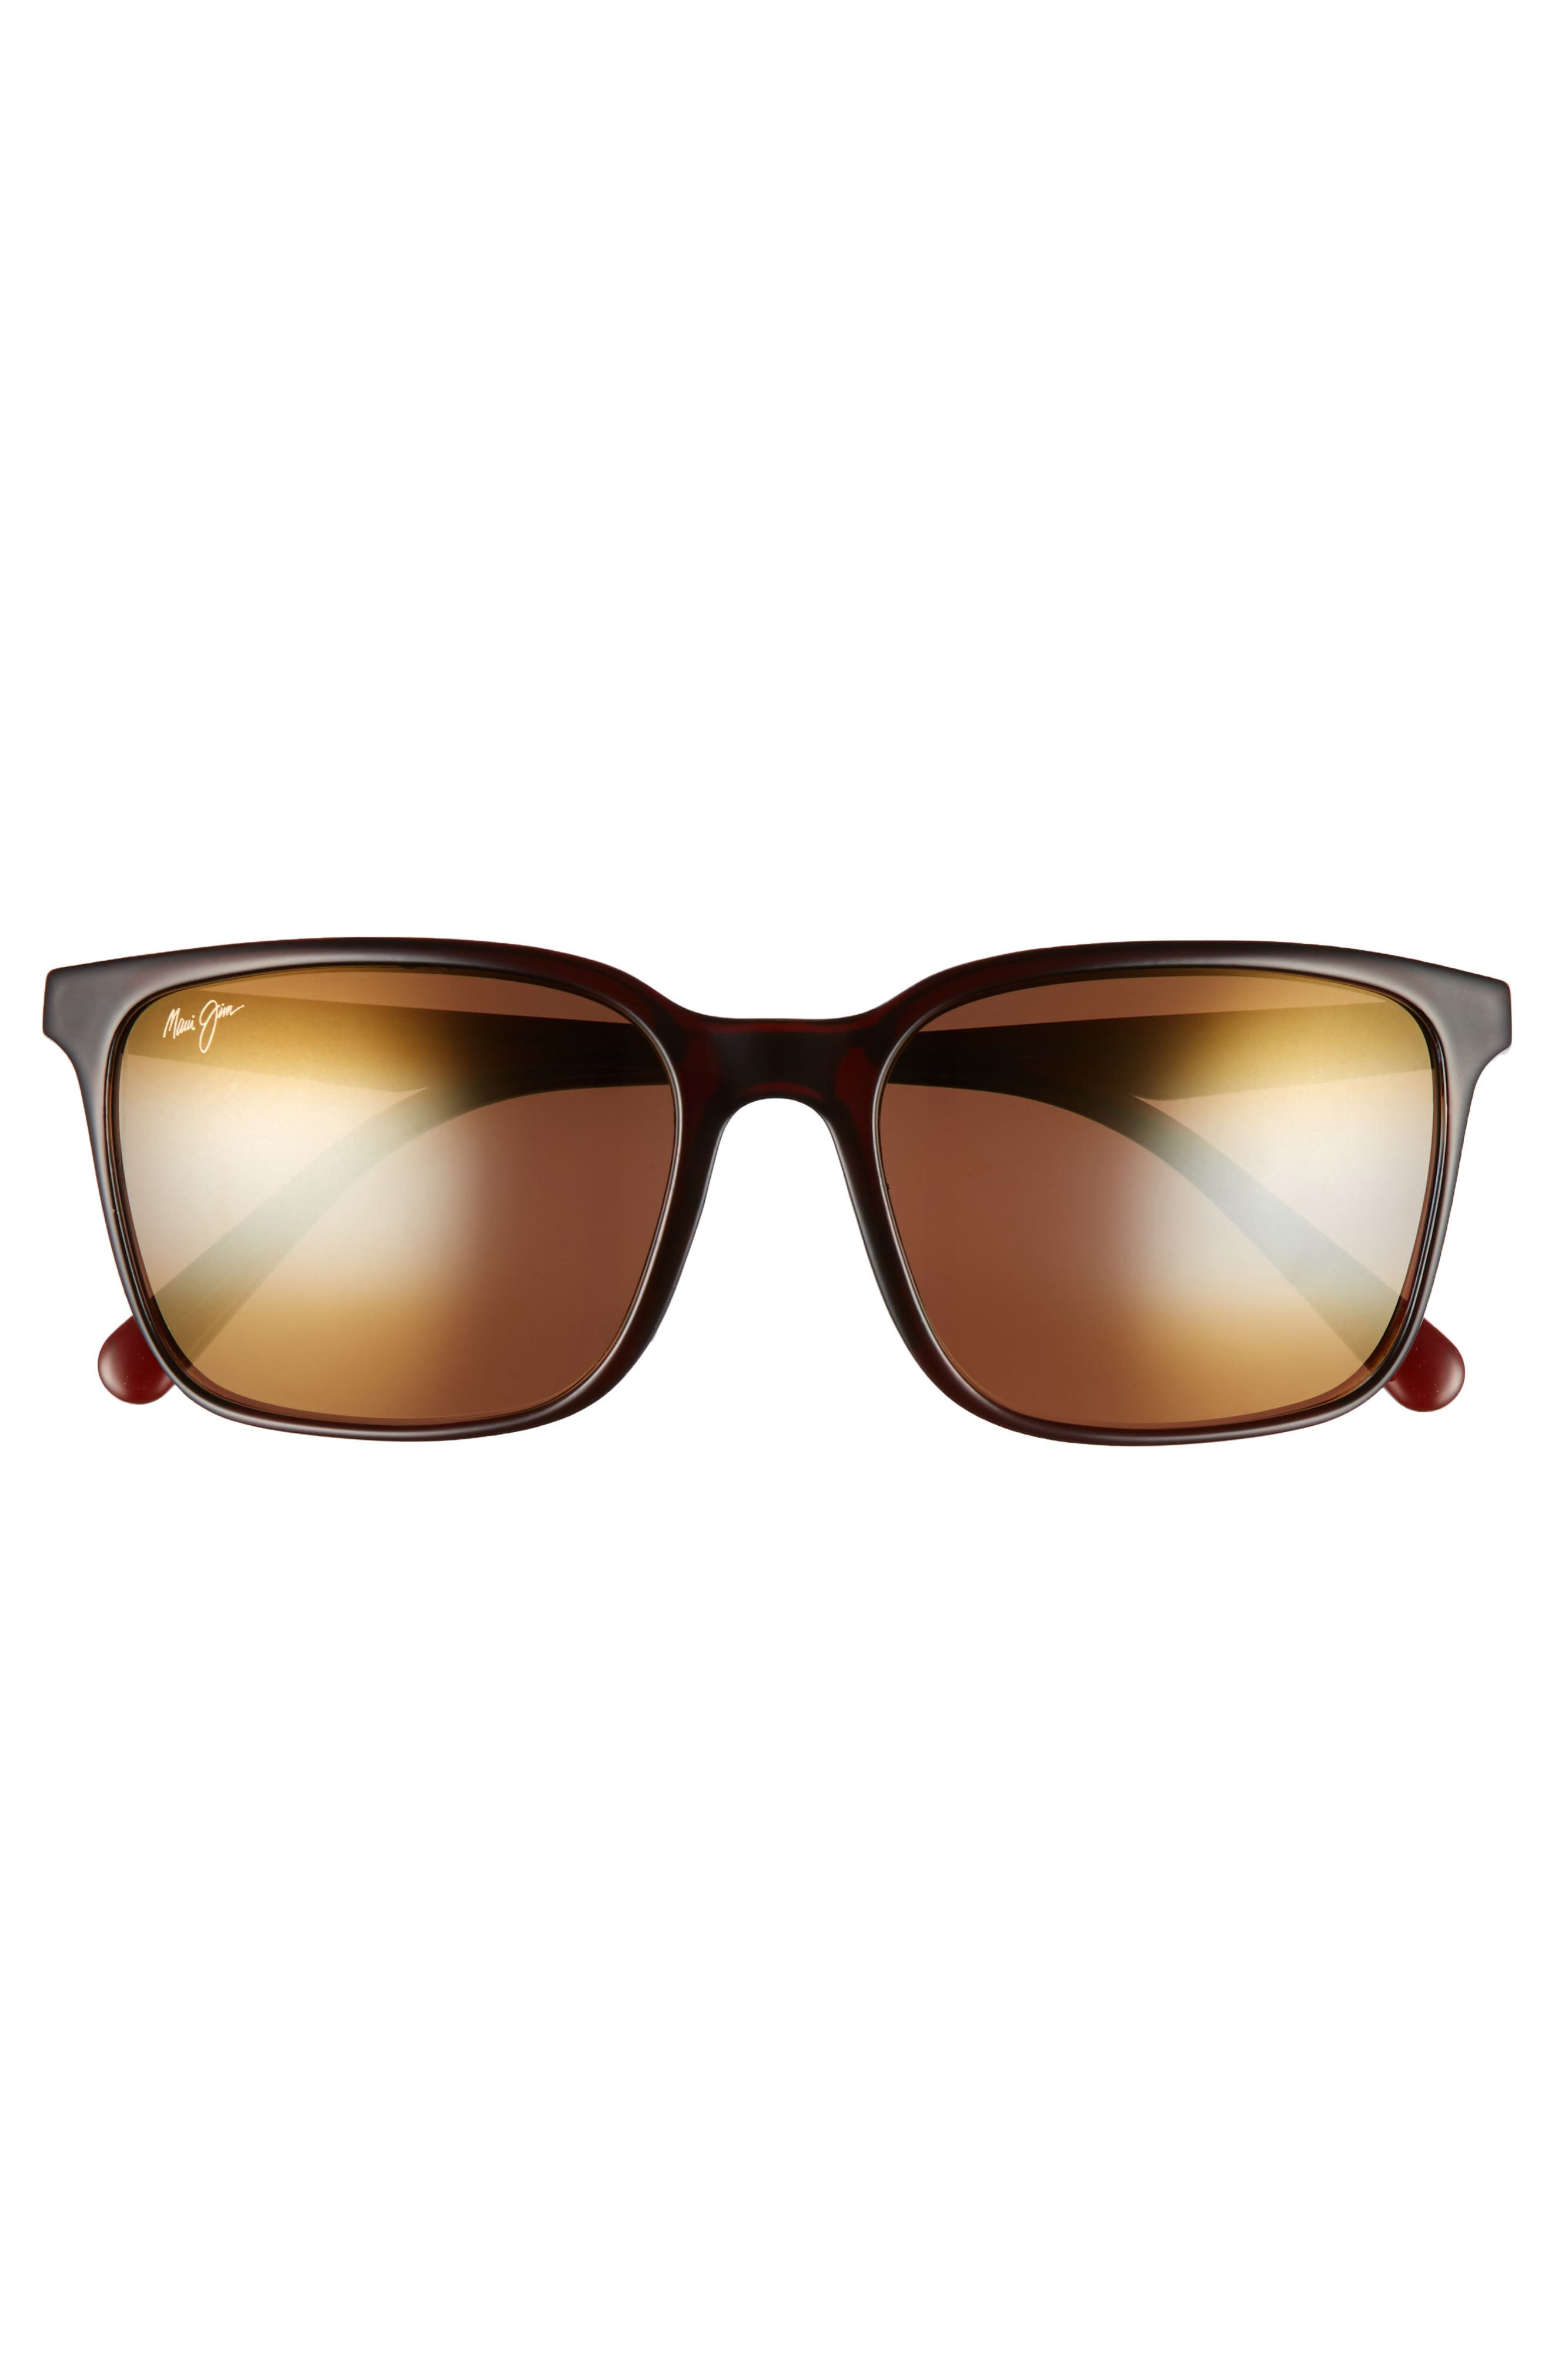 Wild Coast 56mm Polarized Sunglasses,                             Alternate thumbnail 2, color,                             ROOT BEER BLUE/ BRONZE